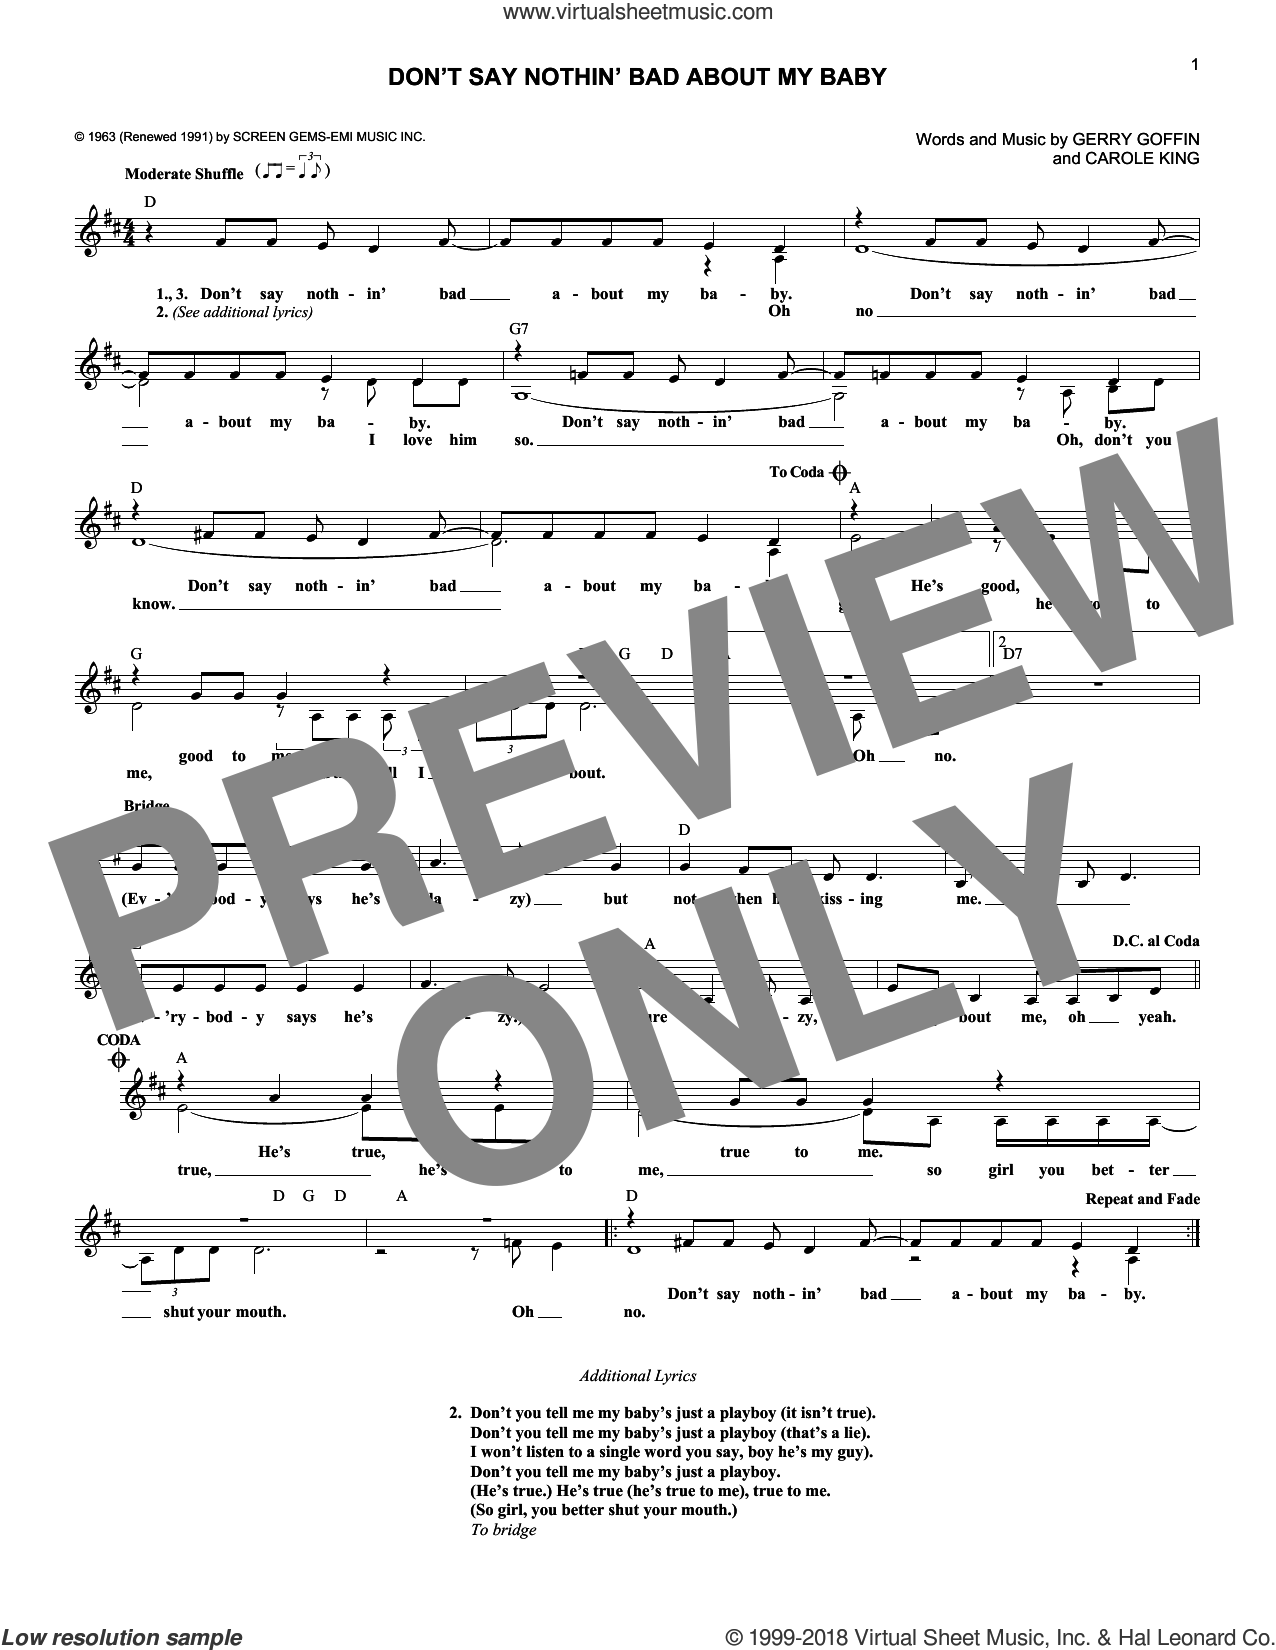 Don't Say Nothin' Bad About My Baby sheet music for voice and other instruments (fake book) by The Cookies, Carole King and Gerry Goffin, intermediate skill level